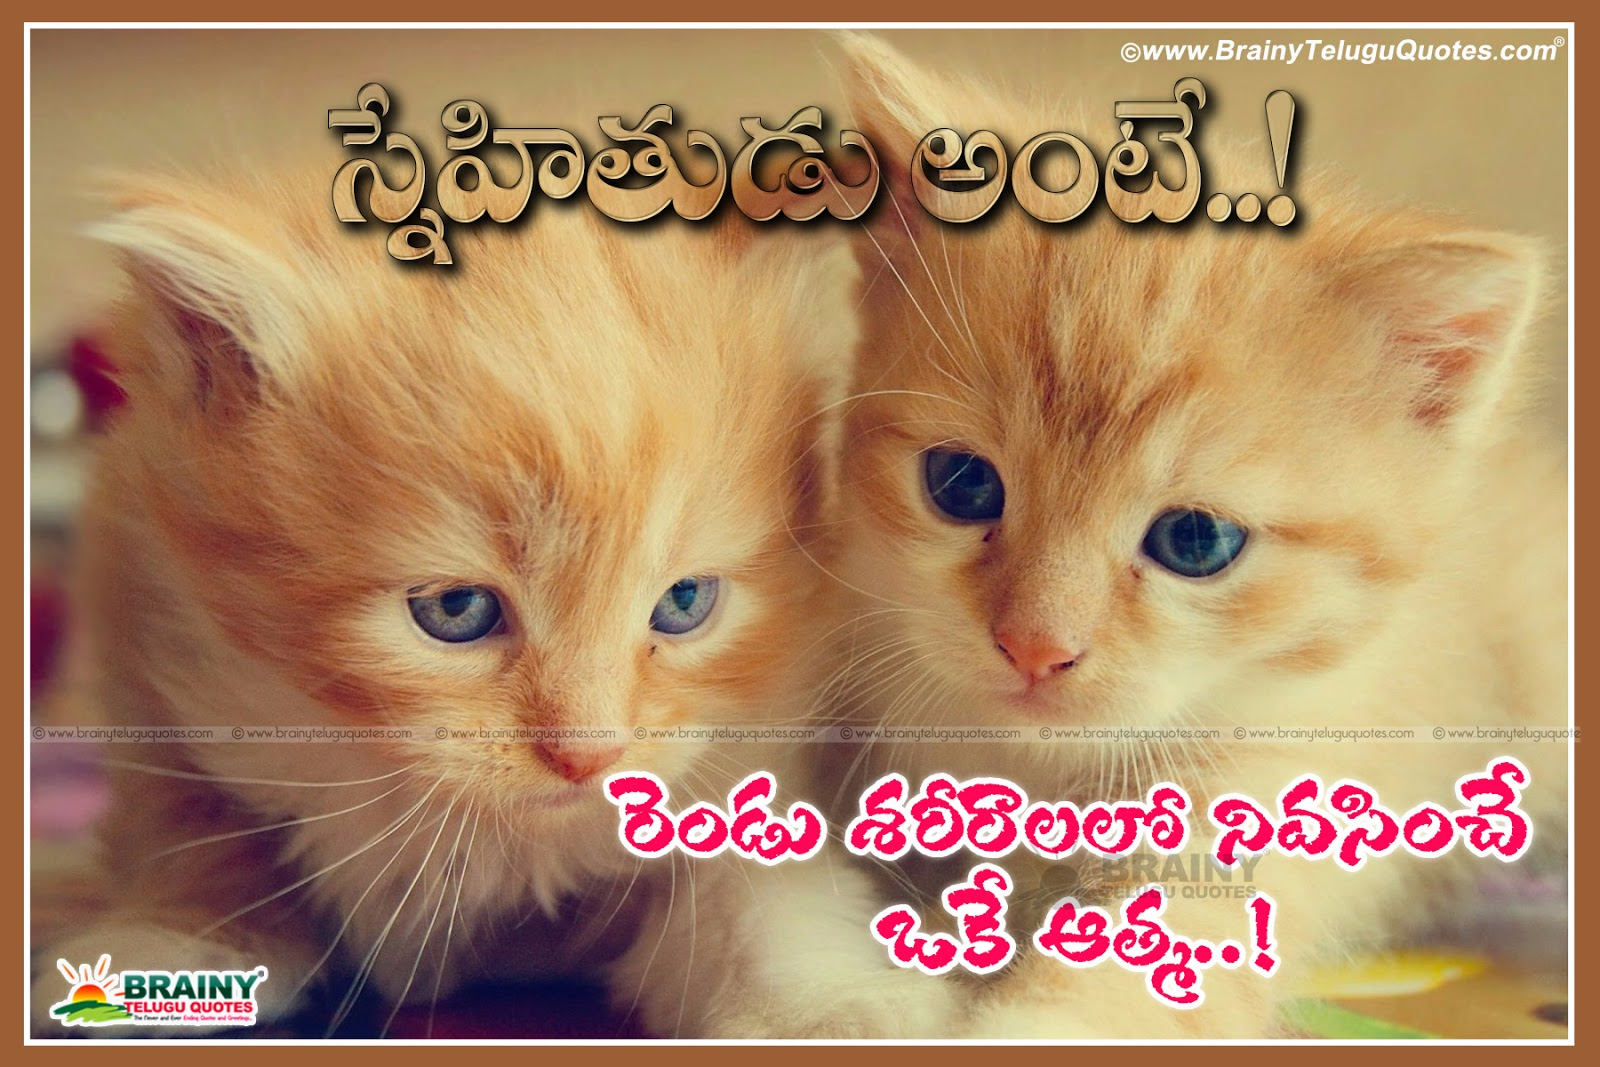 Friendship meaning Messages and Quotations in Telugu